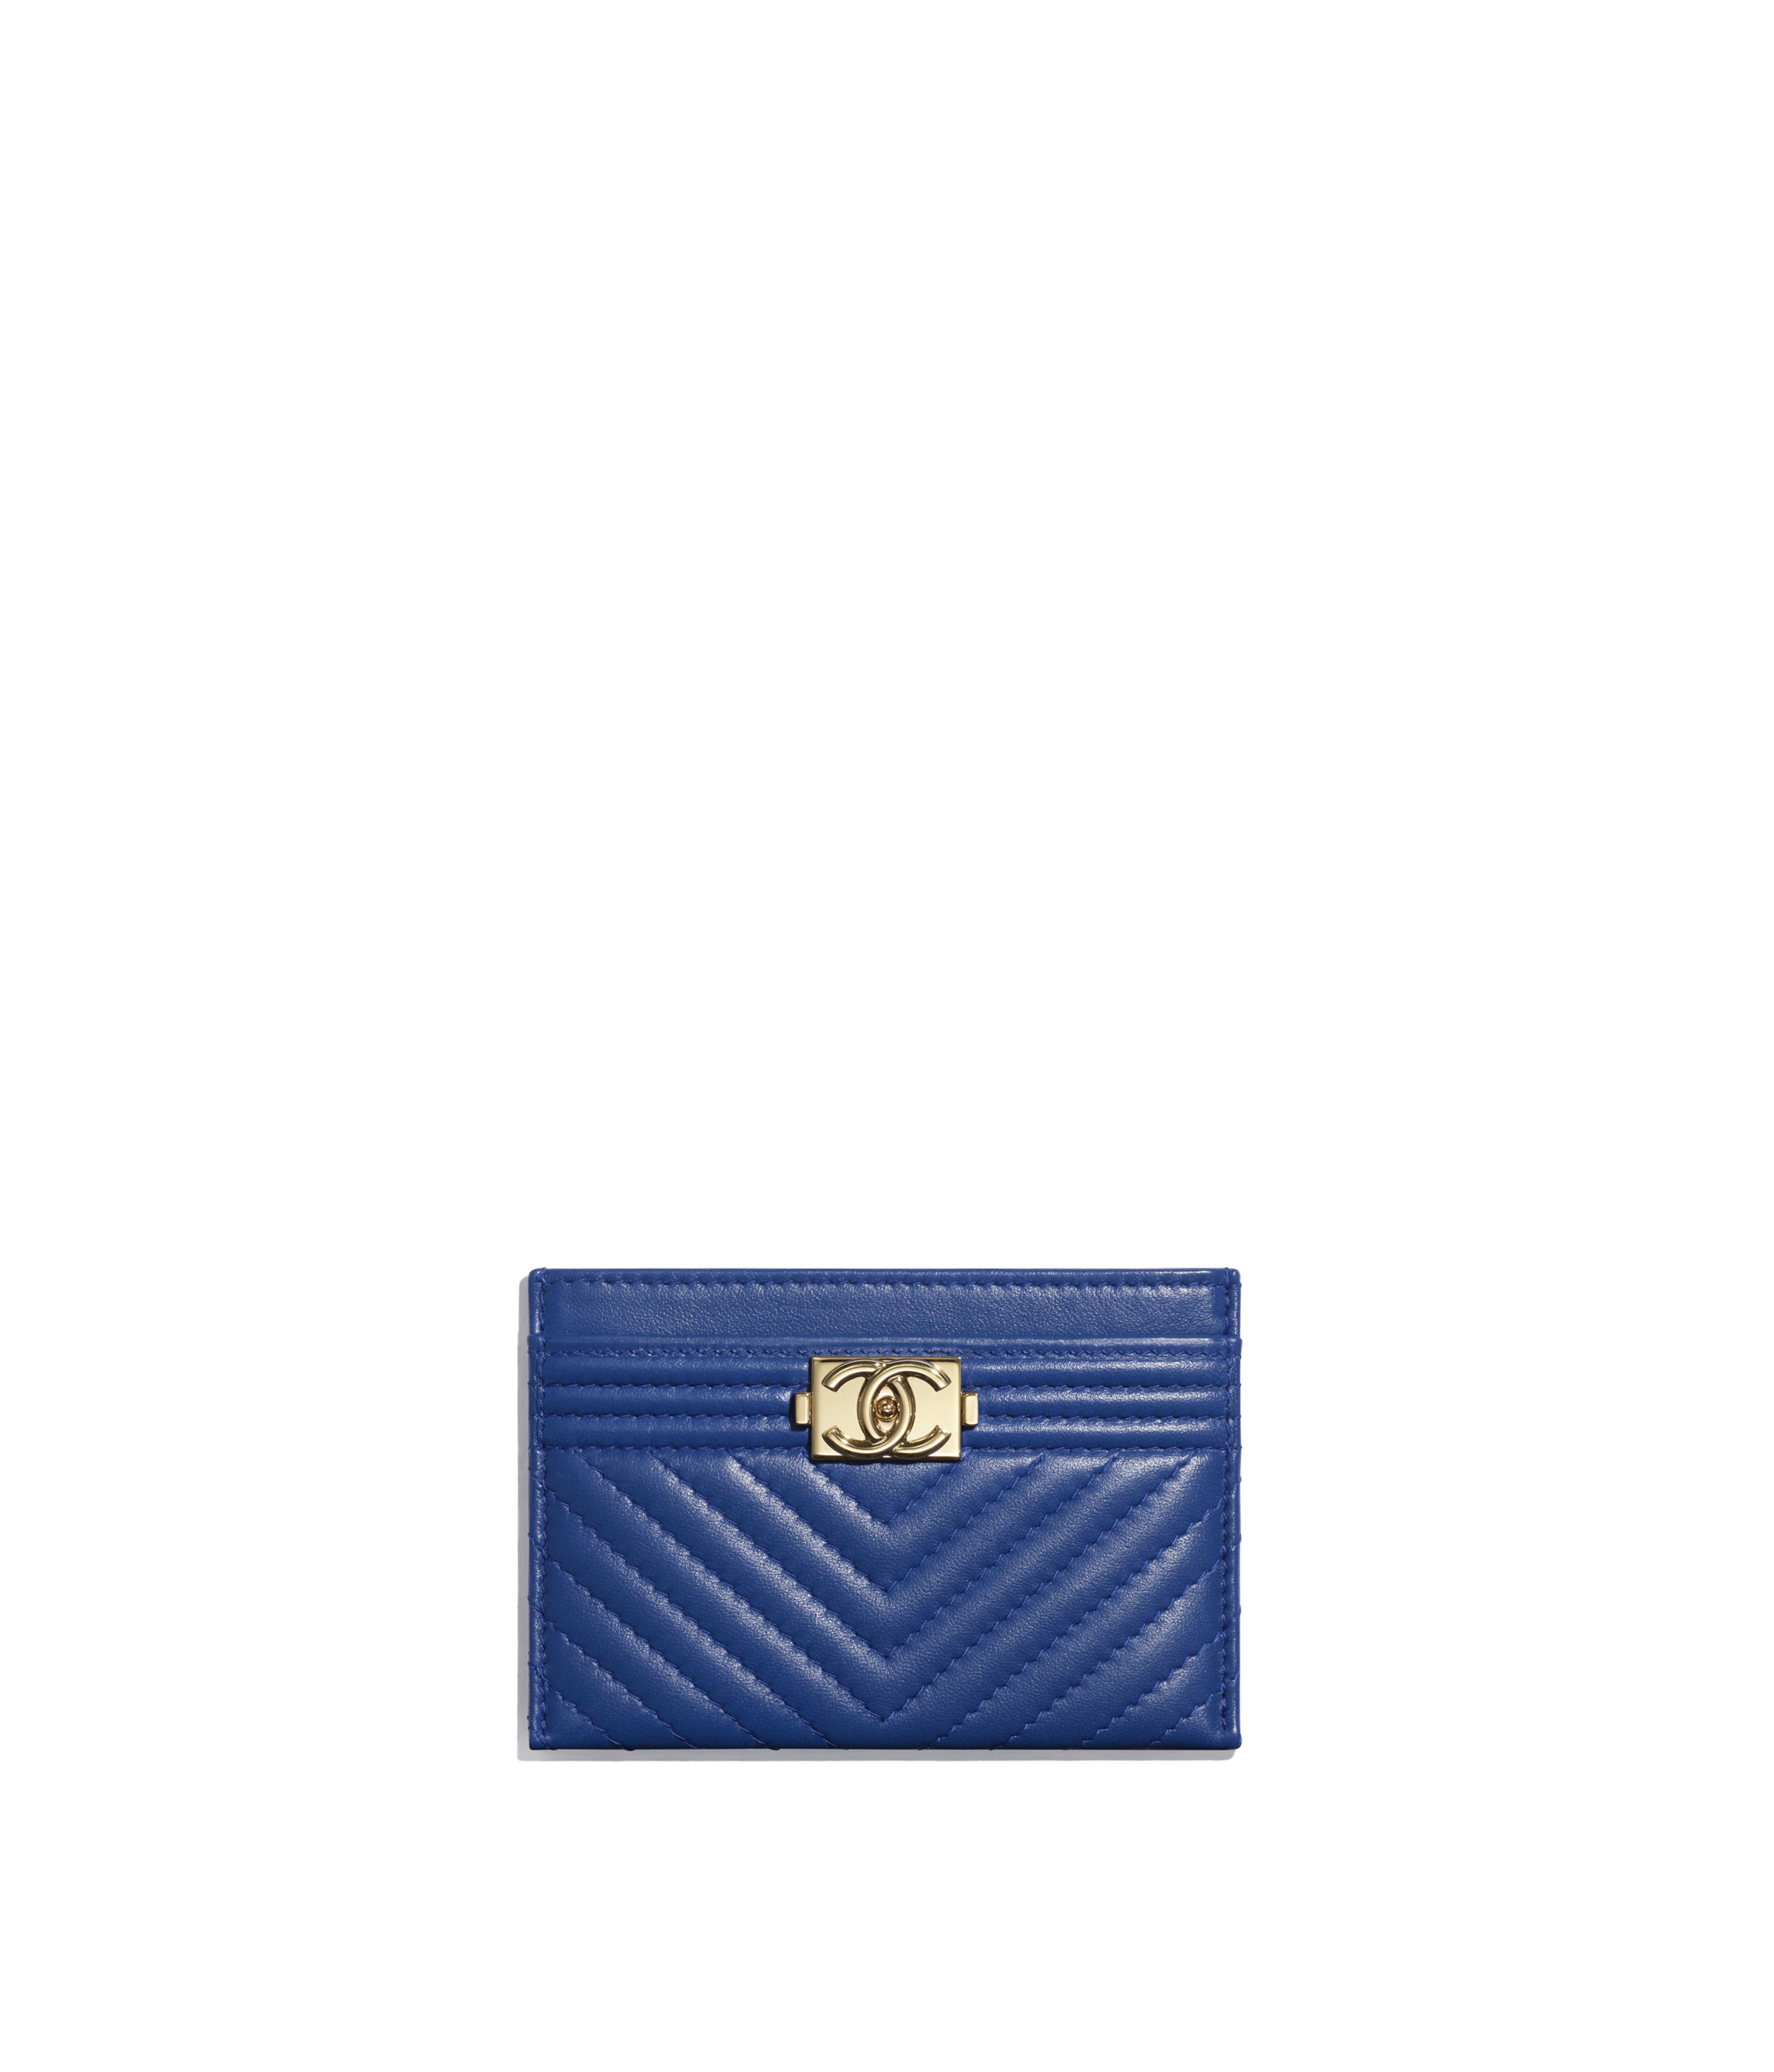 d4f38e79a38d BOY CHANEL Card Holder Lambskin & Gold-Tone Metal, Dark Blue Ref.  A84431B00635N4708